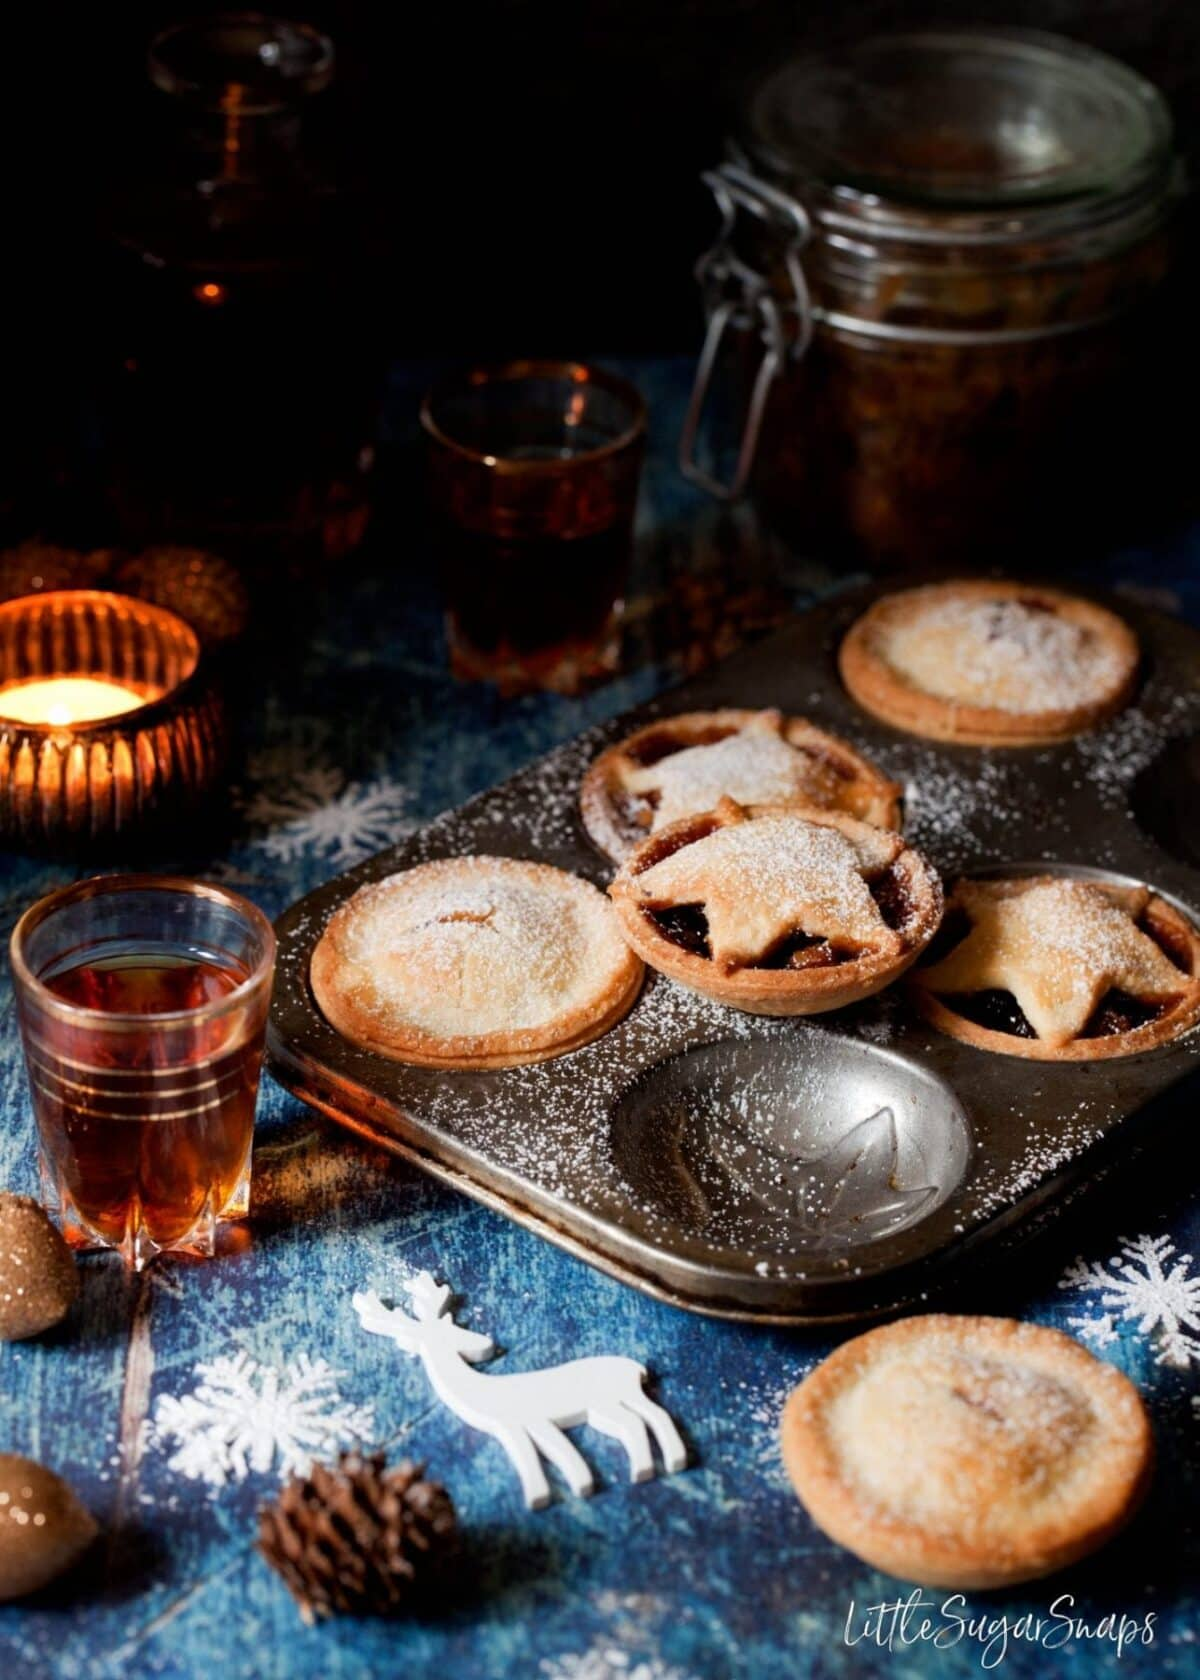 Gluten Free Mince Pies in a vintage baking tin with christmas ornaments and a glass of amaretto